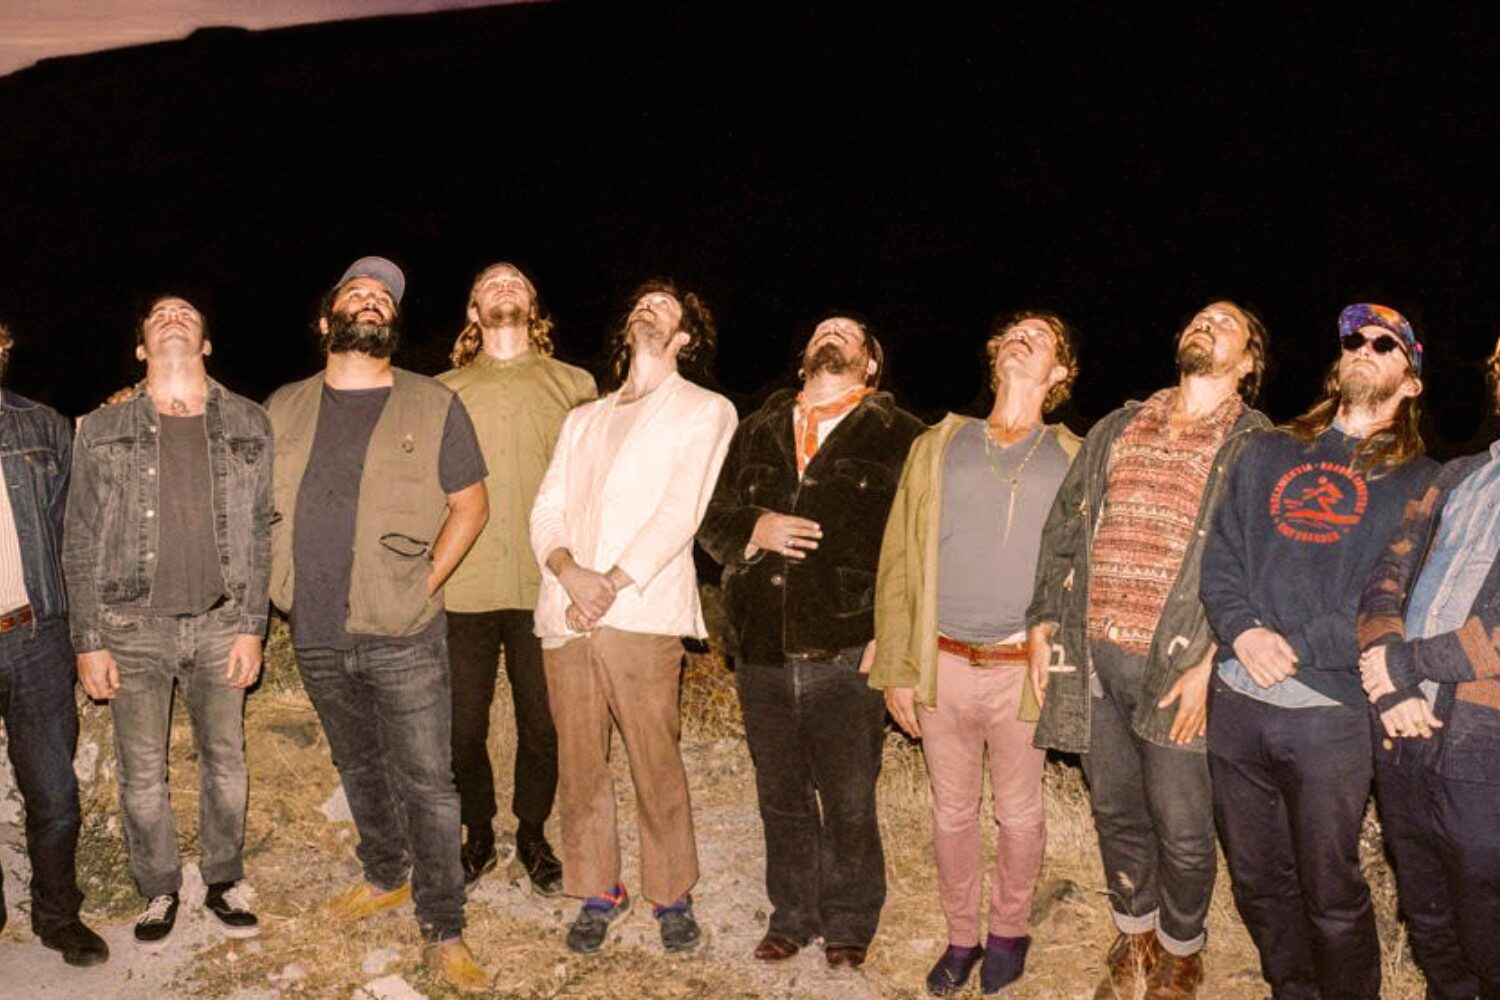 Edward Sharpe & the Magnetic Zeros, Slow Club added to Green Man 2016